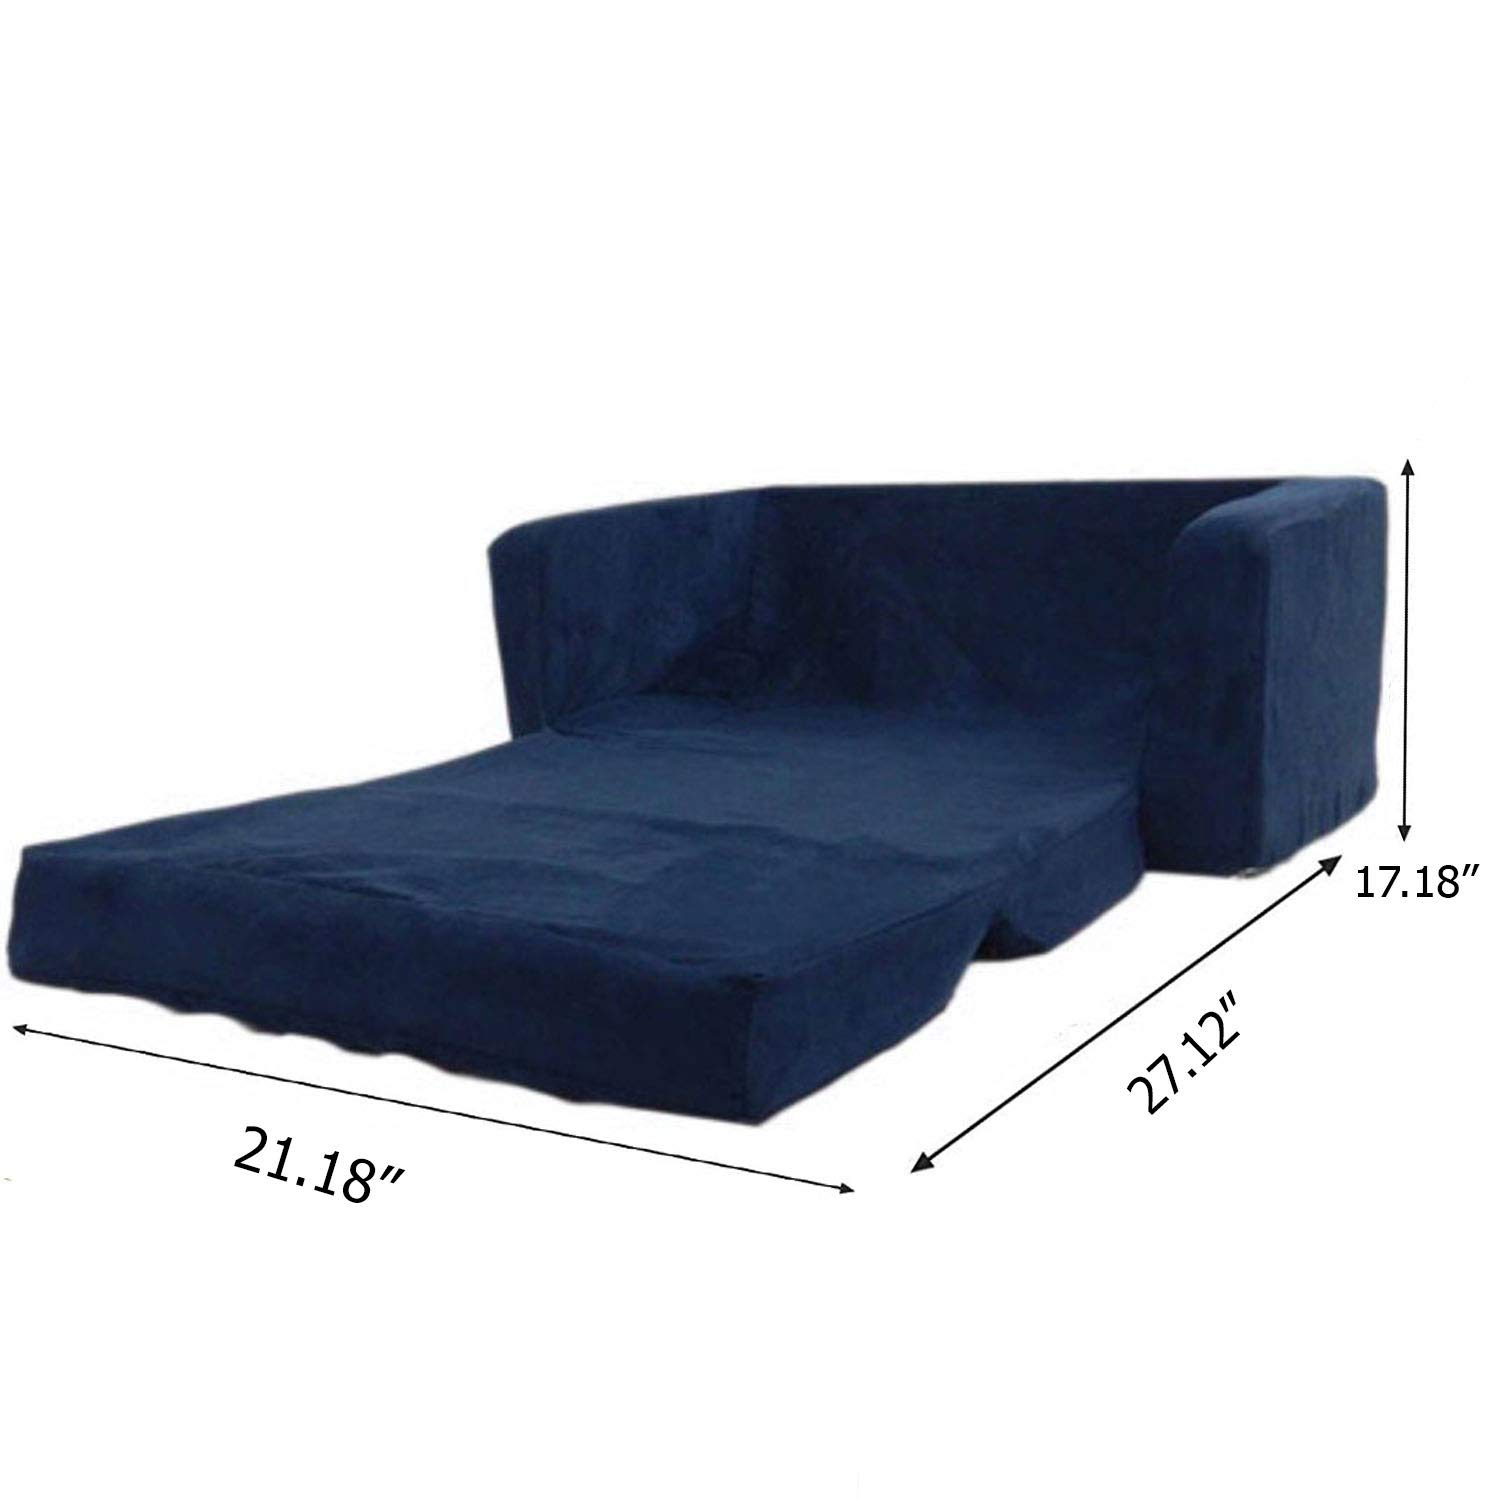 Amazon.com: Flip Open Foam Sofa for Kids Room Recliner ...